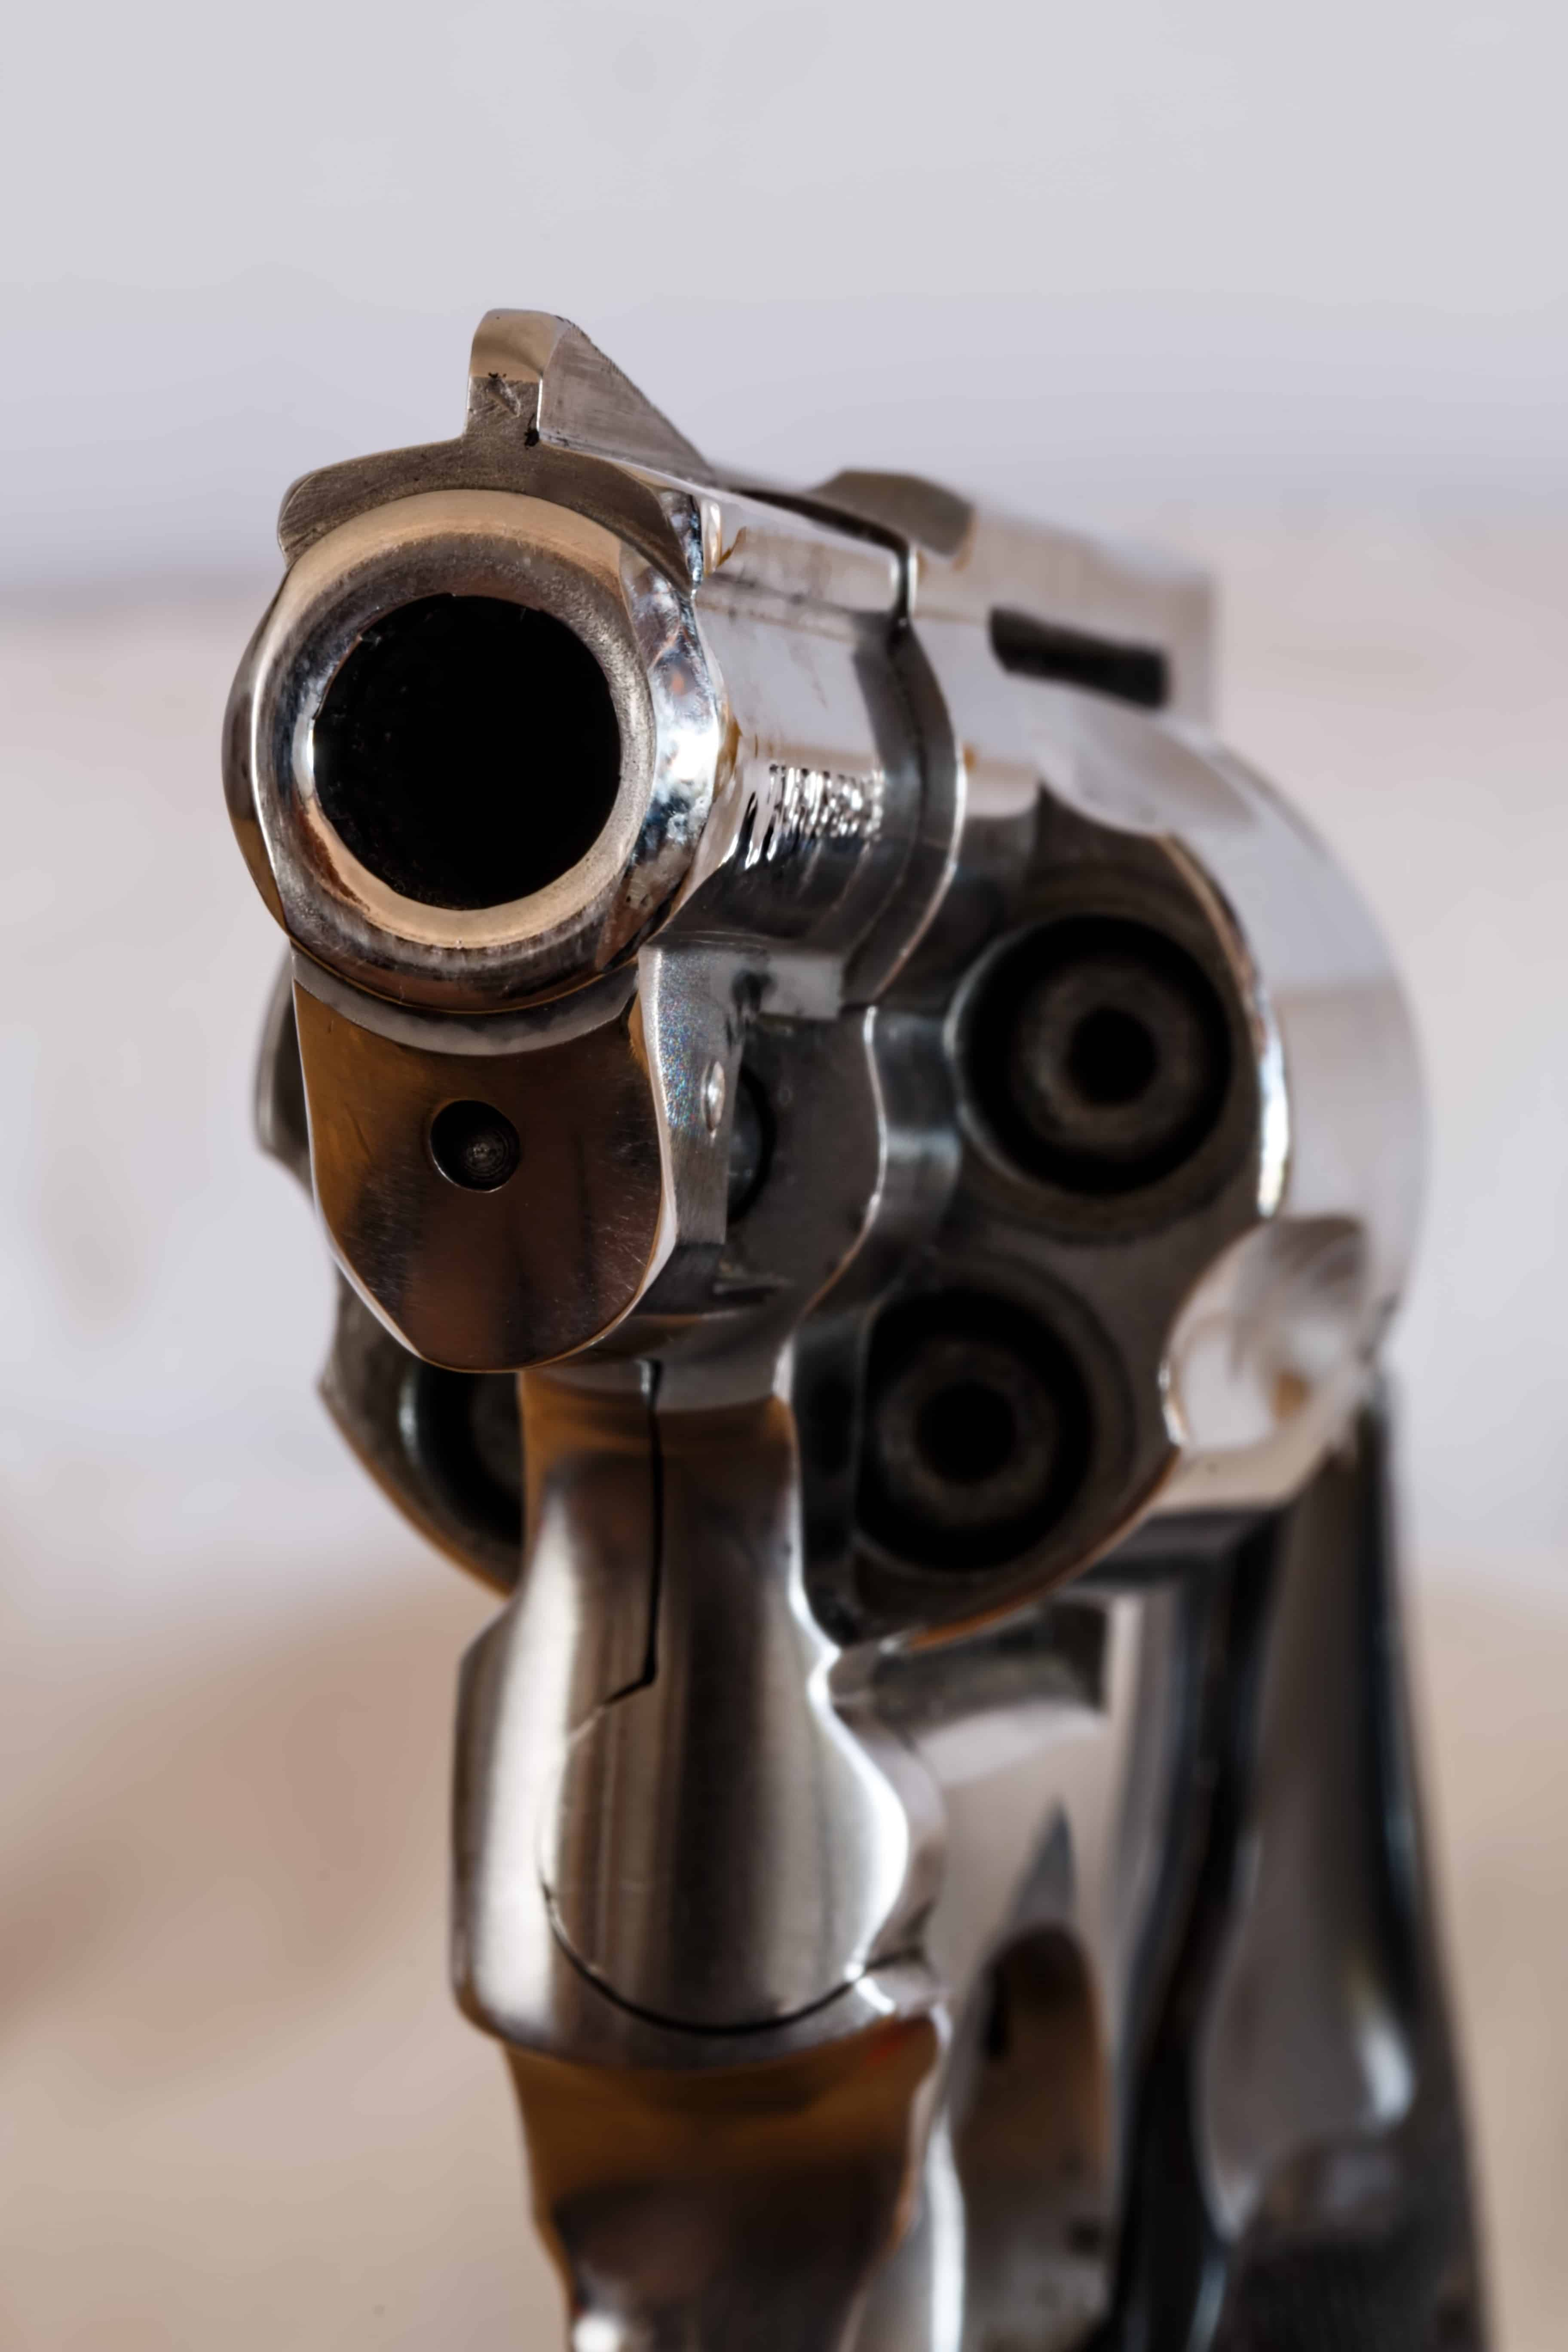 Dementia and Guns: A Dangerous Combination